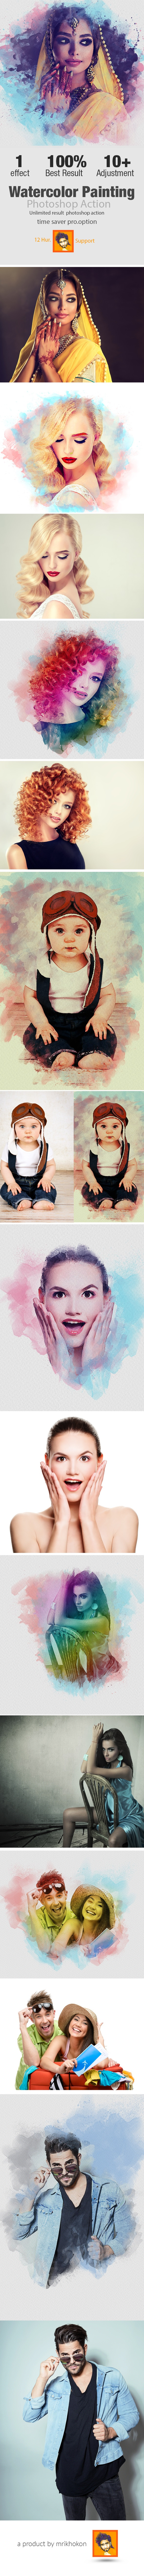 Watercolor Painting - Actions Photoshop